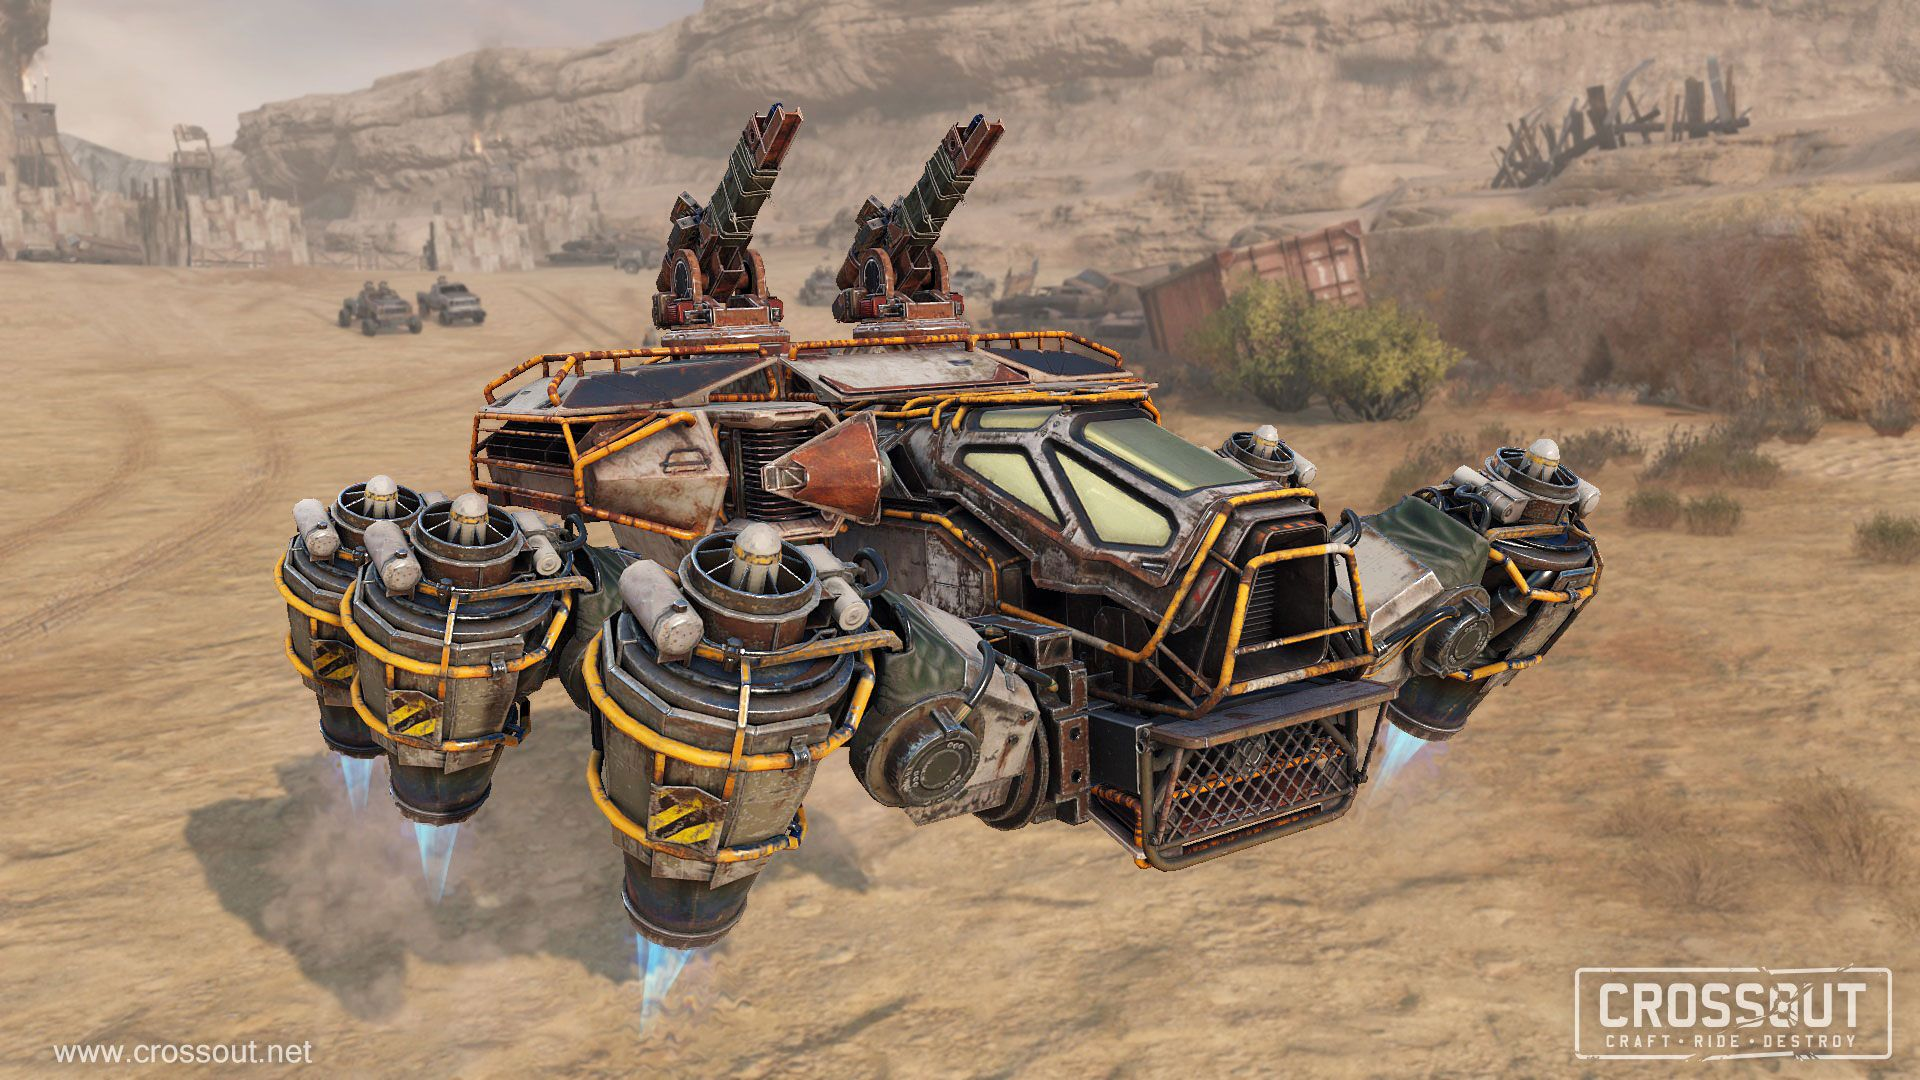 3d Laser Wallpapers New Faction In Crossout Dawn S Children Here On F2p Com